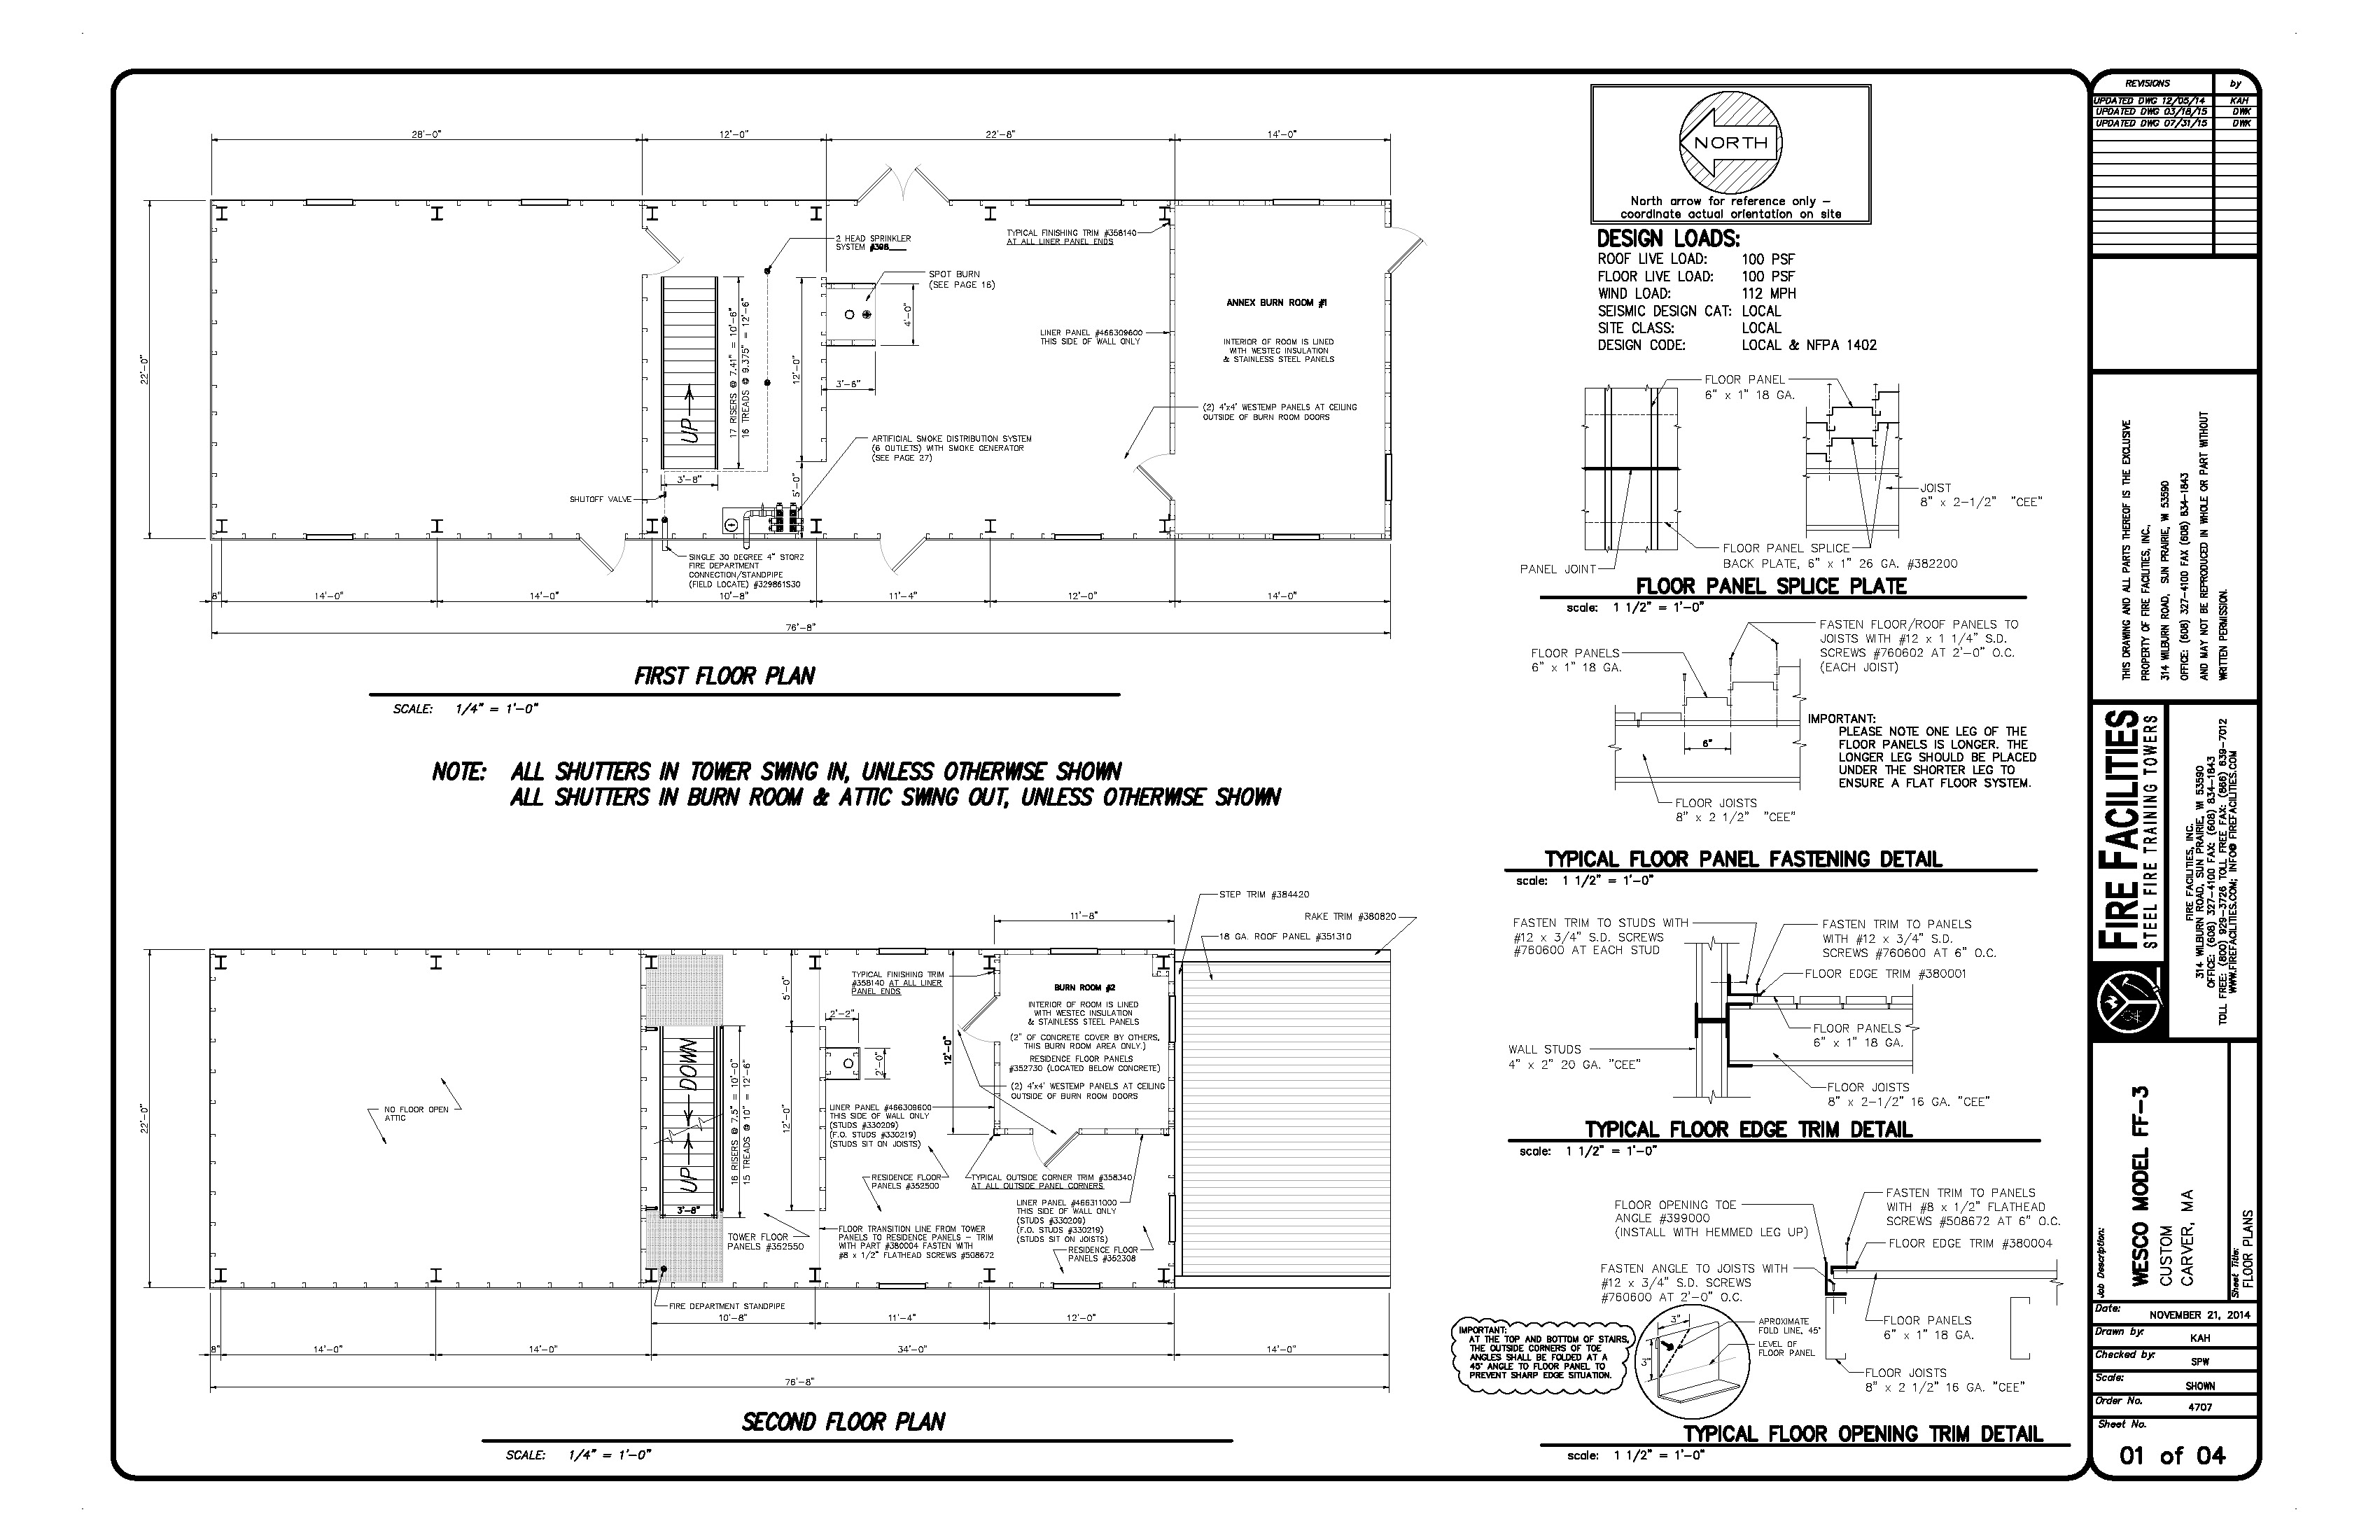 Trainng Facility Drawing 4707D_07-31-15 ATTACHMENT B_Page_1